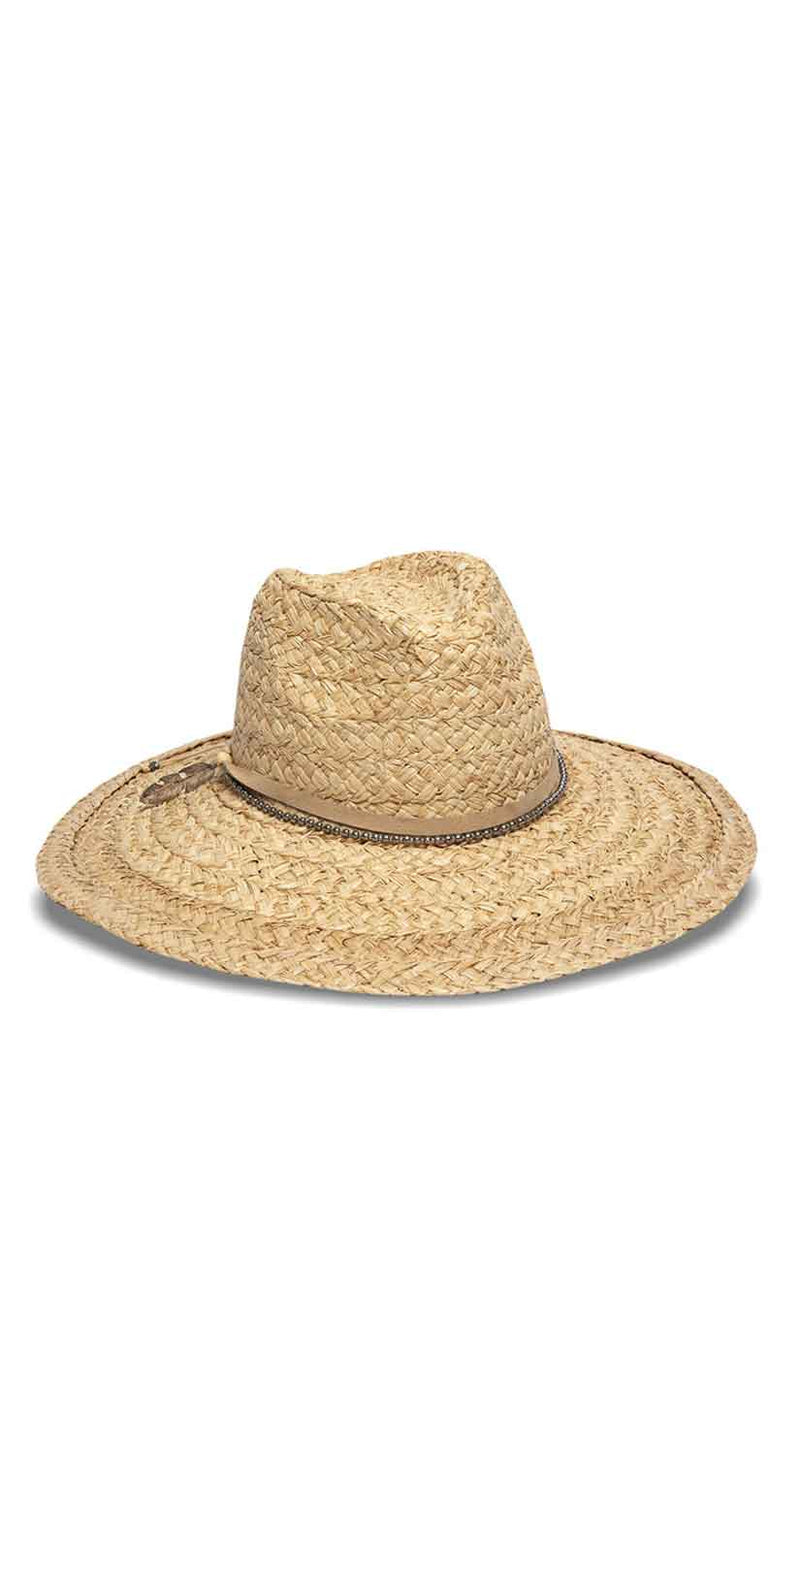 Nikki Beach Perie Hat in Natural: